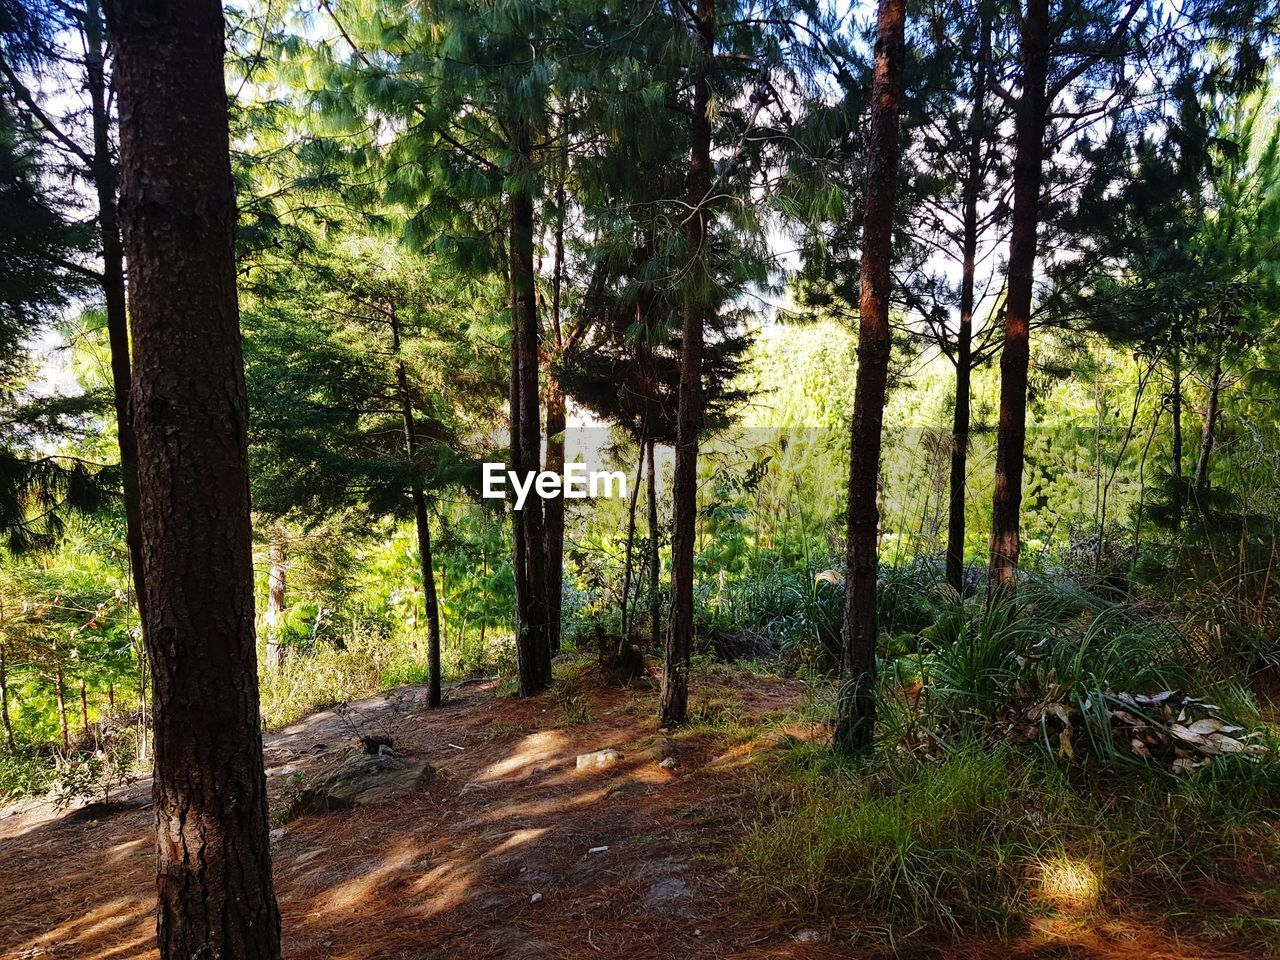 tree, plant, forest, land, tree trunk, trunk, growth, nature, beauty in nature, tranquility, no people, woodland, environment, day, tranquil scene, scenics - nature, landscape, non-urban scene, sunlight, green color, outdoors, pine tree, pine woodland